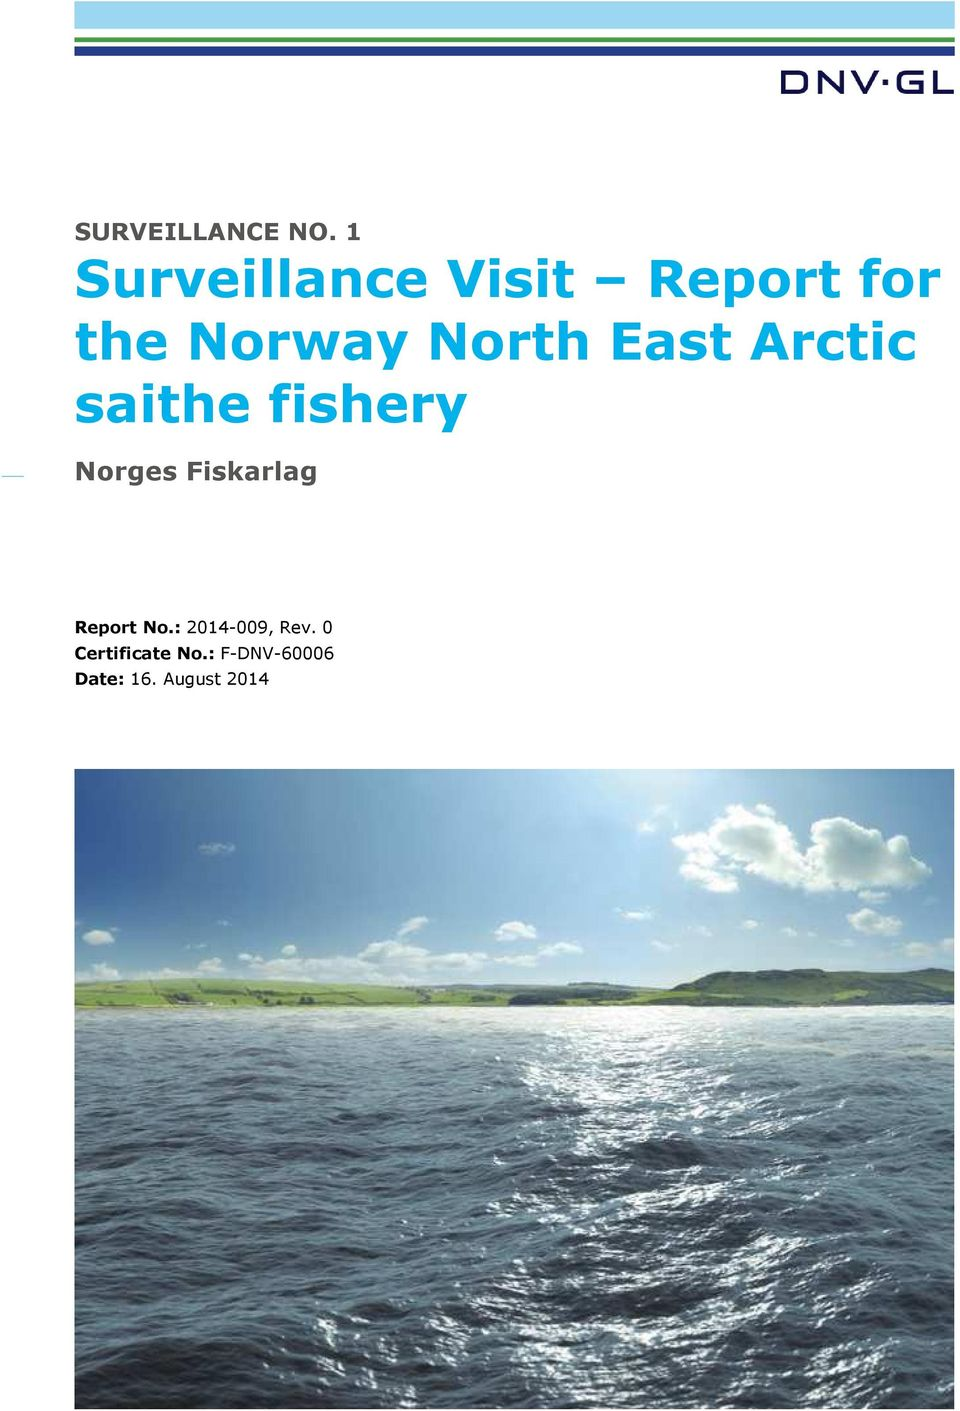 North East Arctic saithe fishery Norges